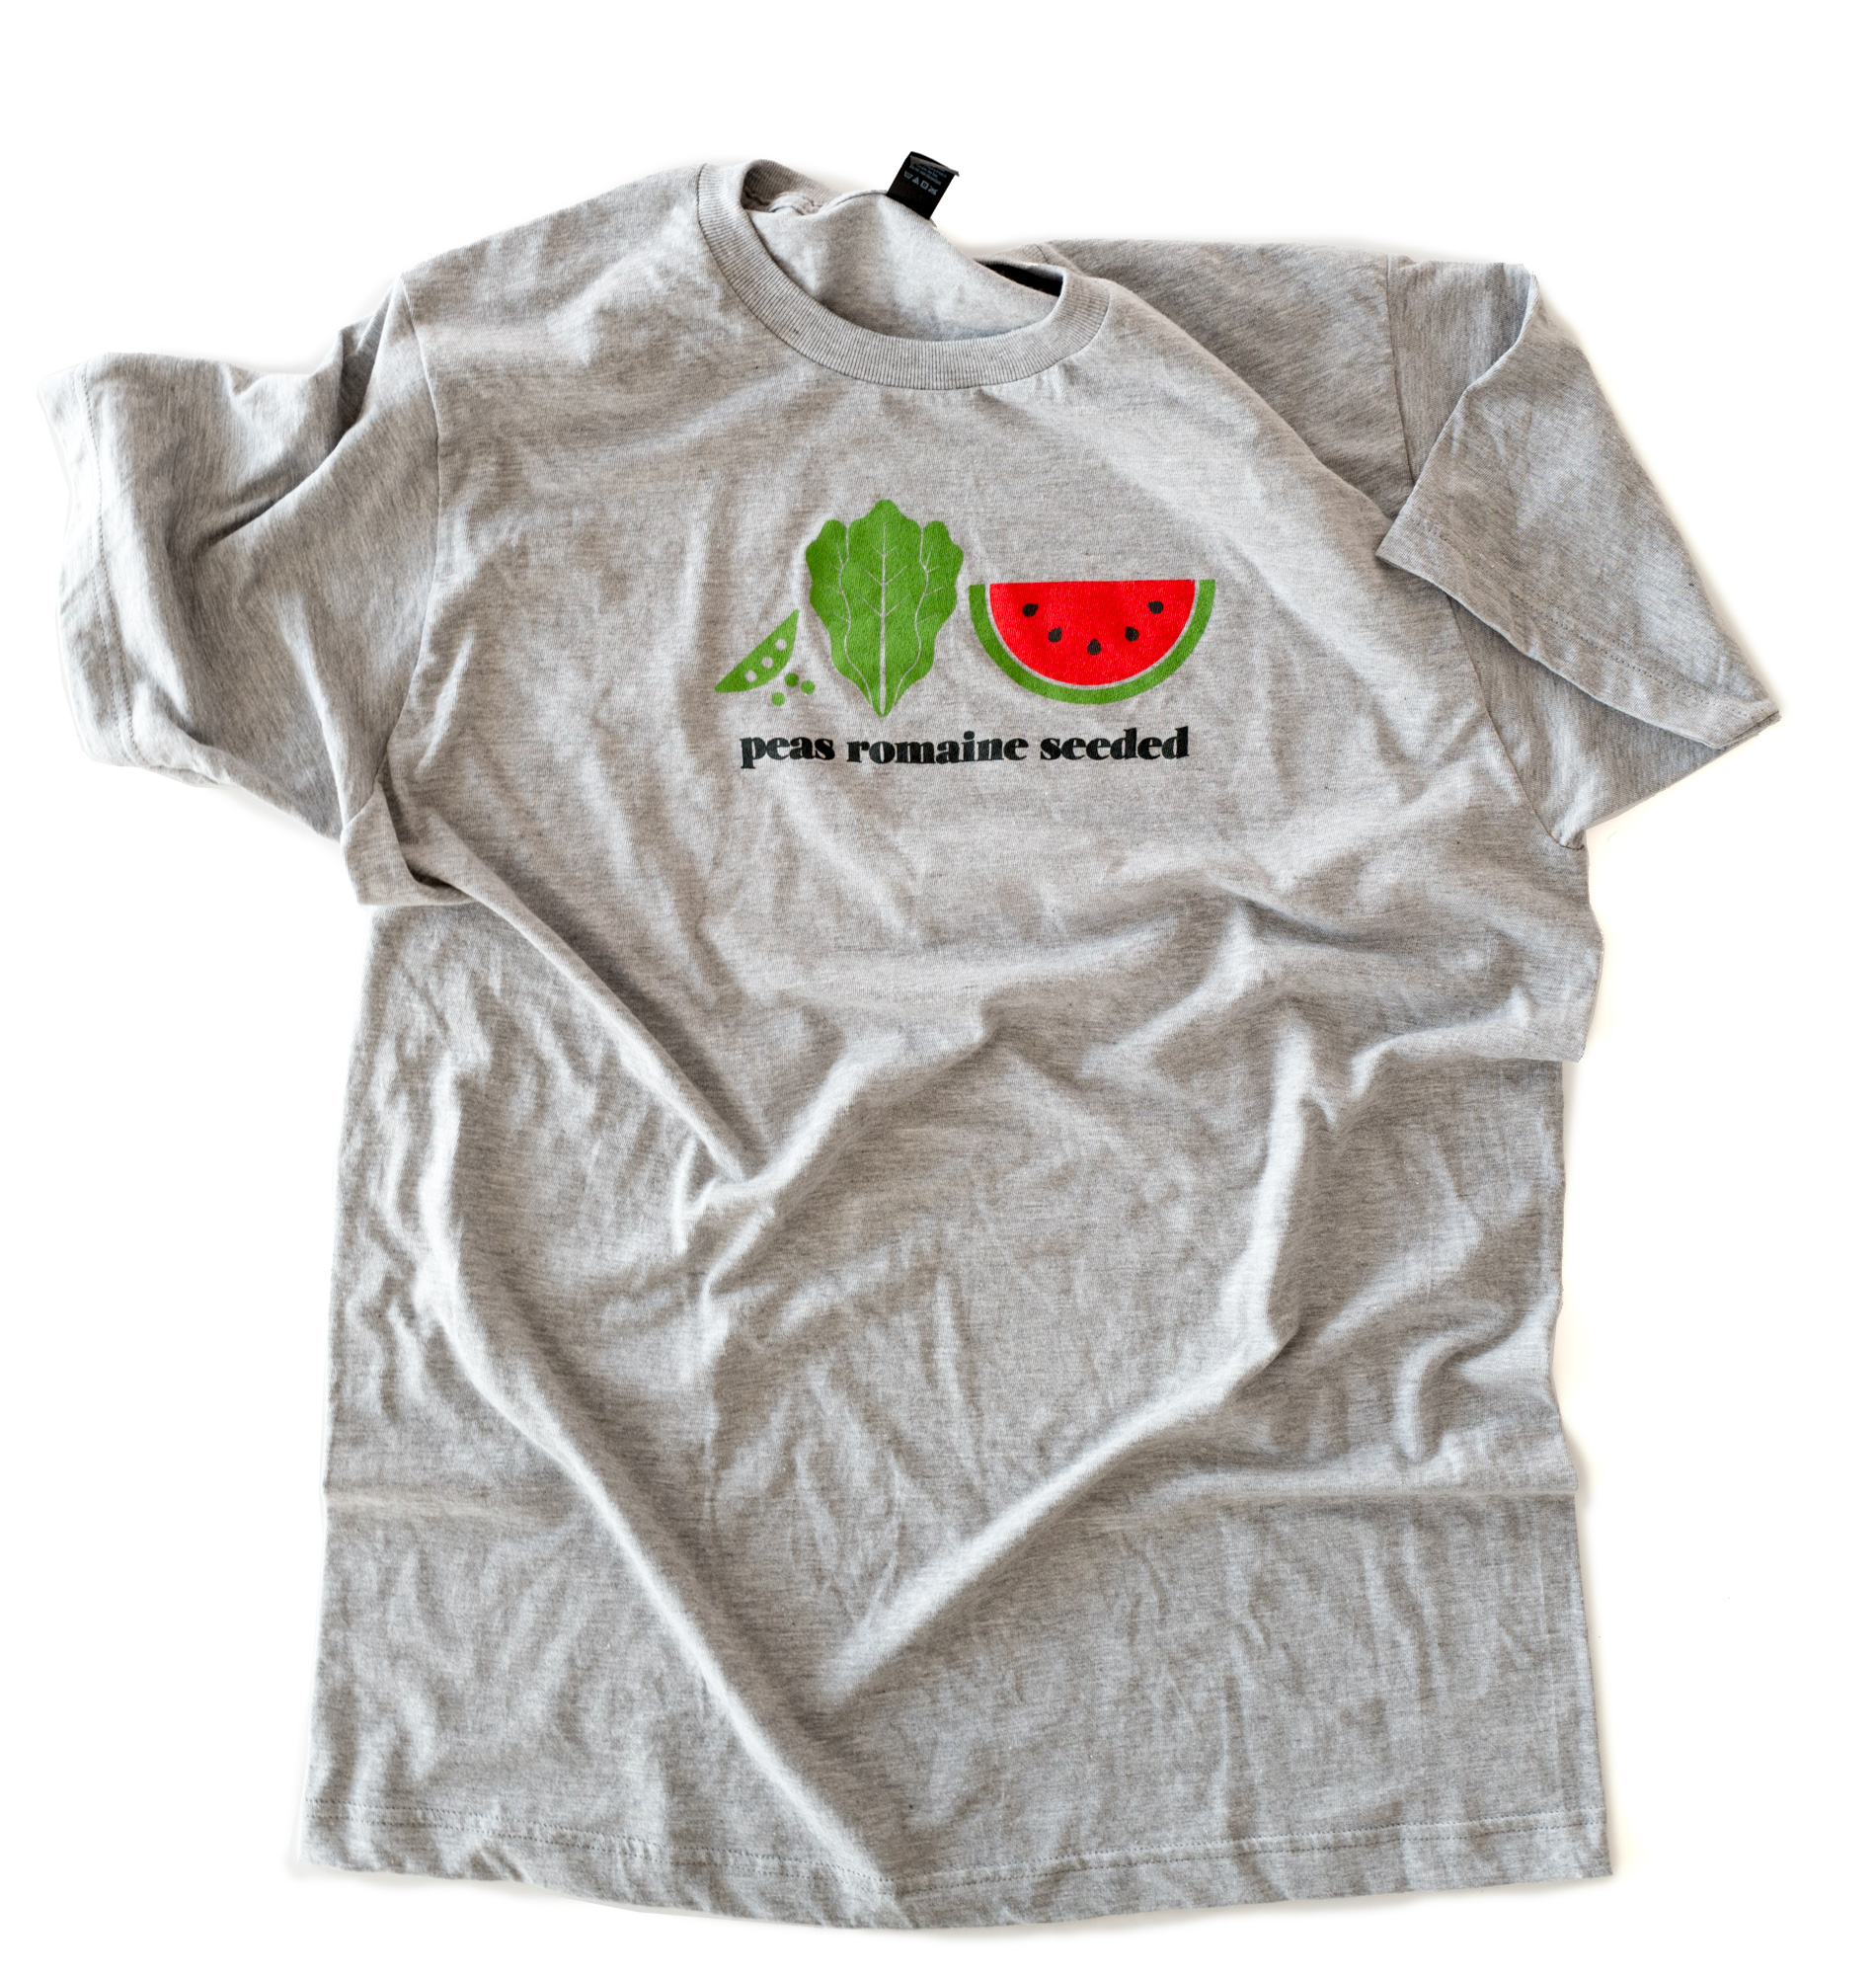 Peas romaine seeded T-shirt designed by Lisa Andrews, RD Sound Bites Nutrition